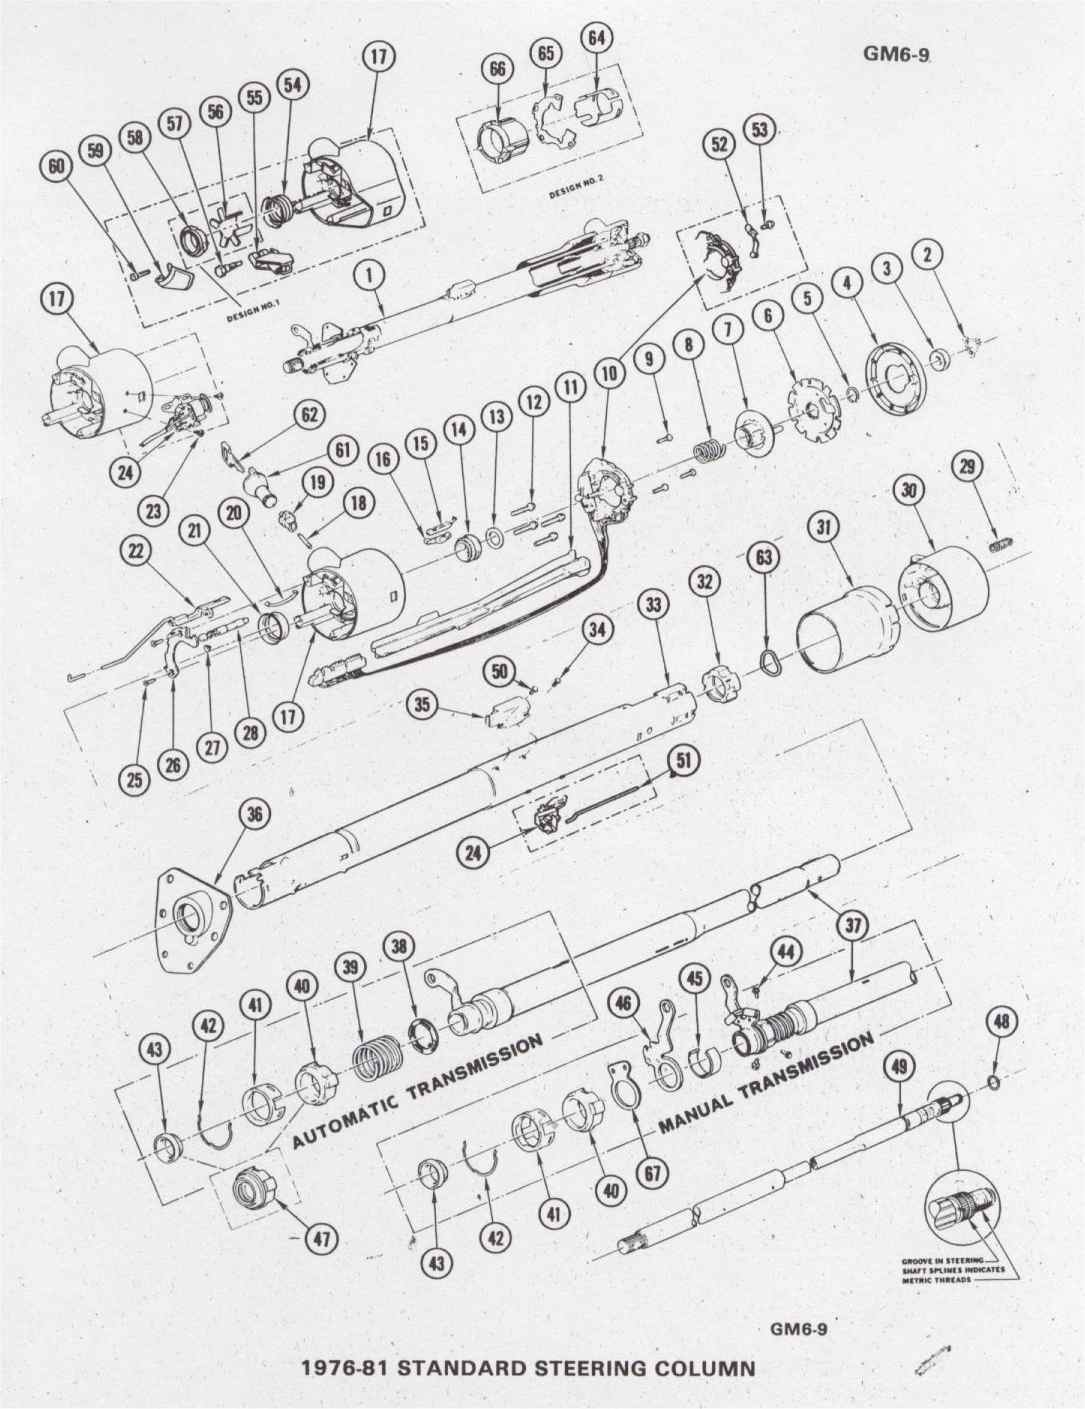 Camaro Wiper Motor Wiring Diagram on wiper washer motor, vacuum wipers diagram, 2005 bobcat s185 windshield wioer motor diagram, wiper switch diagram, wiper motor power supply, wiper motor toyota, wwf wiper motor diagram, wiper wiring hi-low, wiper motor wire, wiper motor cable, front bumper assembly diagram, briggs and stratton electrical diagram, solenoid switch diagram, wiper motor parts, wiper motor cover, wiper motor relay diagram, windshield wiper motor diagram, circuit diagram, ford wiper motor diagram, gm wiper motor diagram,